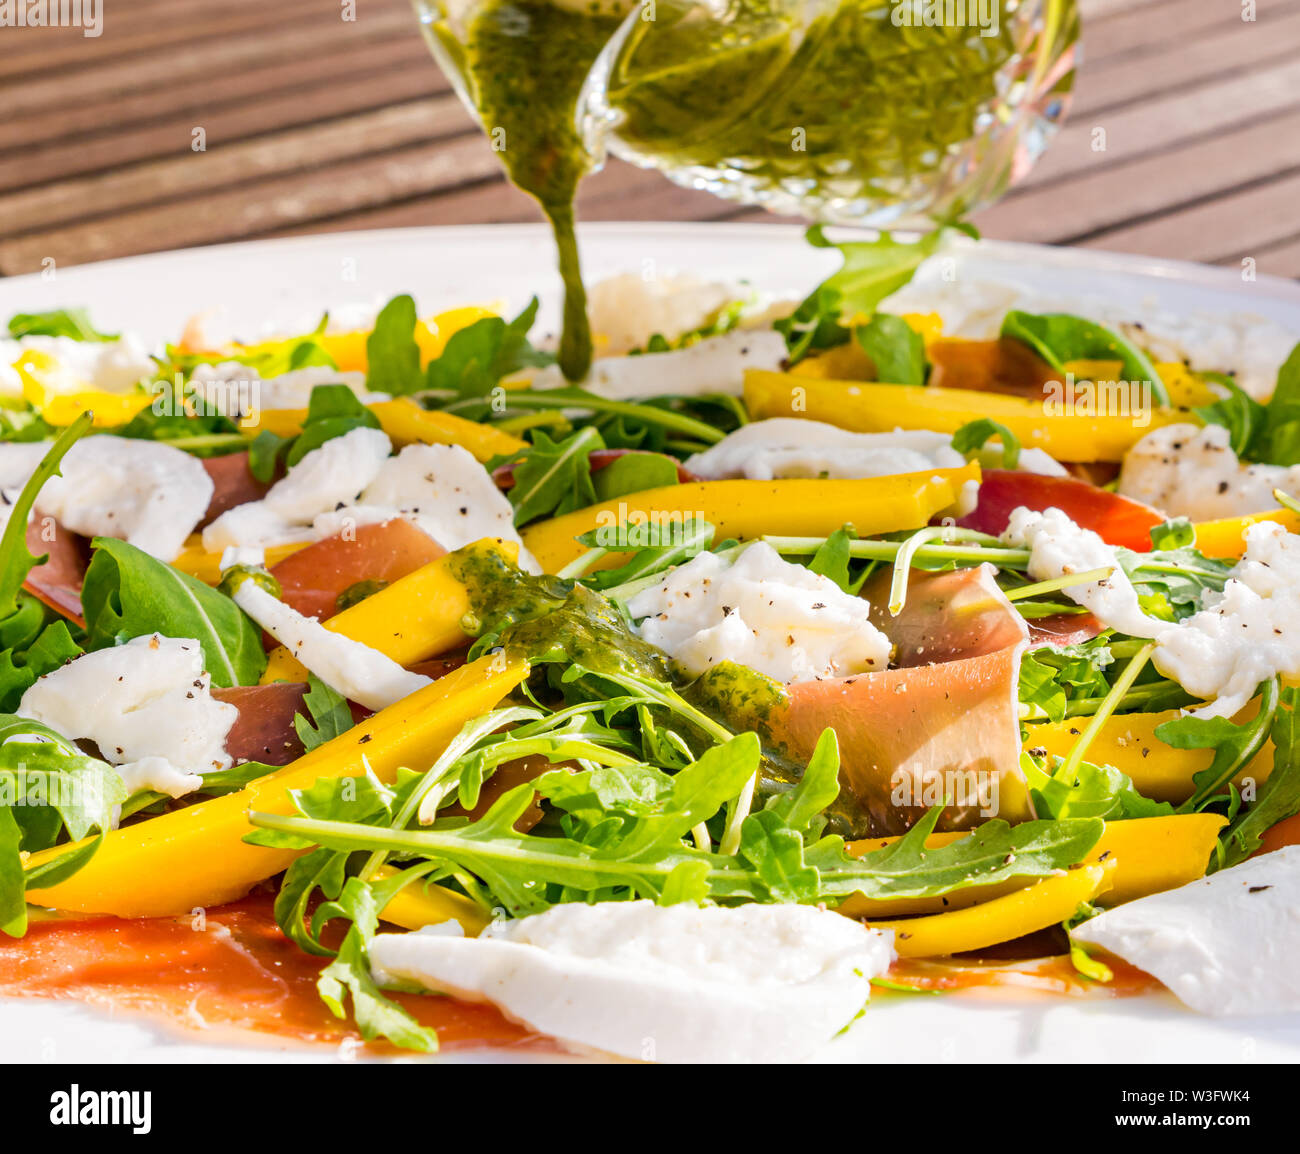 summer-food-salad-meal-served-outdoors-w